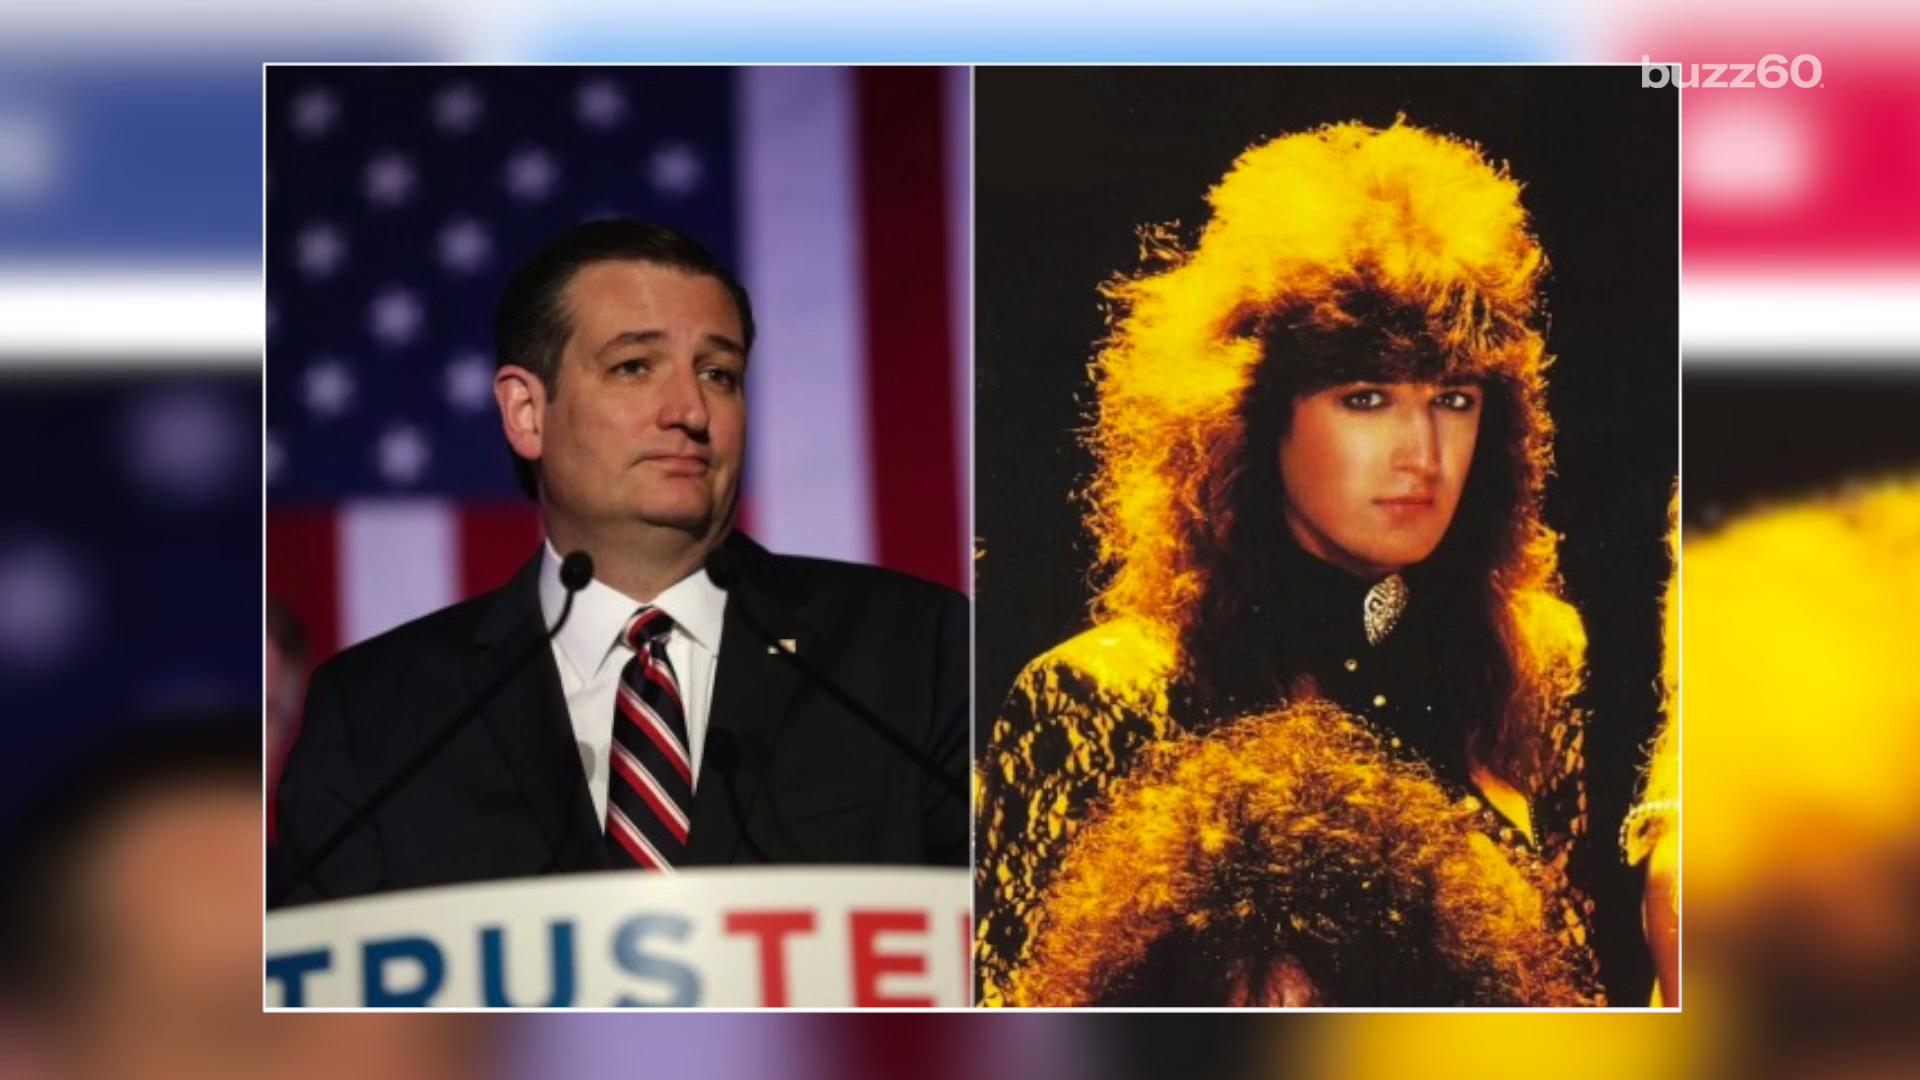 The Internet Thinks Ted Cruz Is the Lead Singer of Stryper